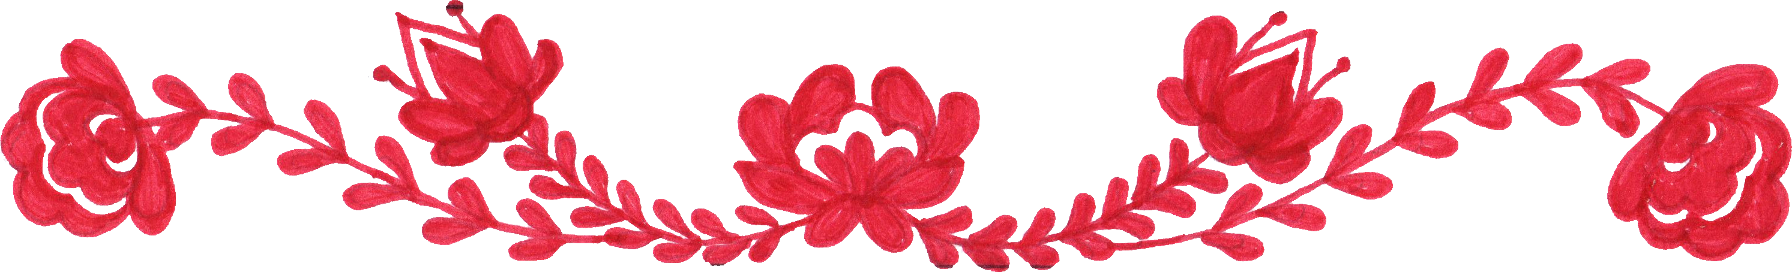 8 Red Flower Border Drawing (PNG Transparent) | OnlyGFX.com